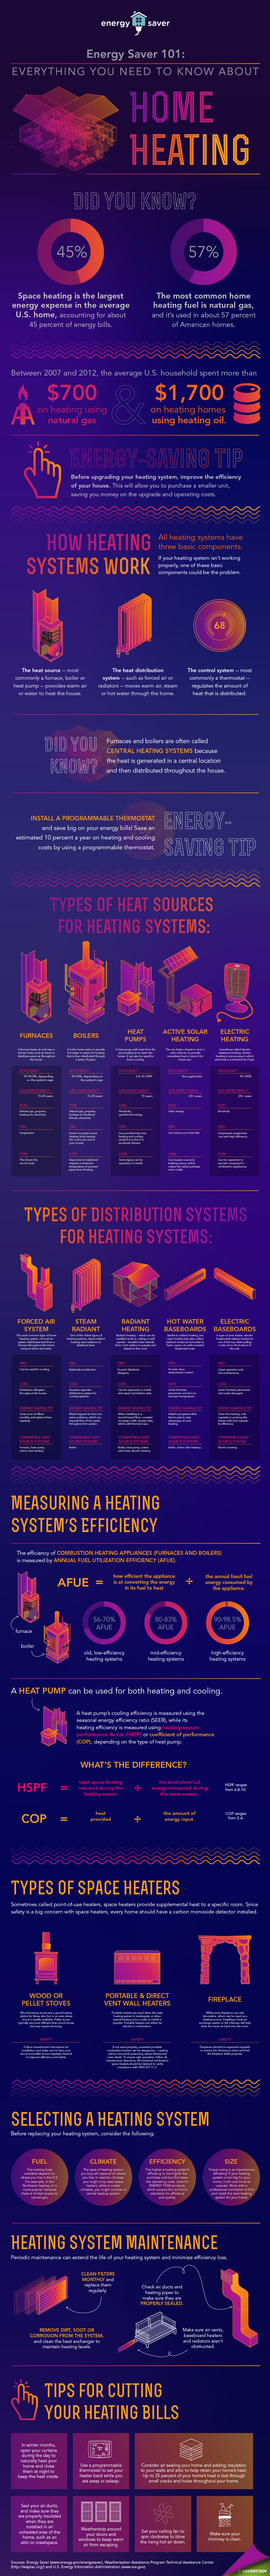 US Department of Energy Energy Saver 101 Infographic: Home Heating